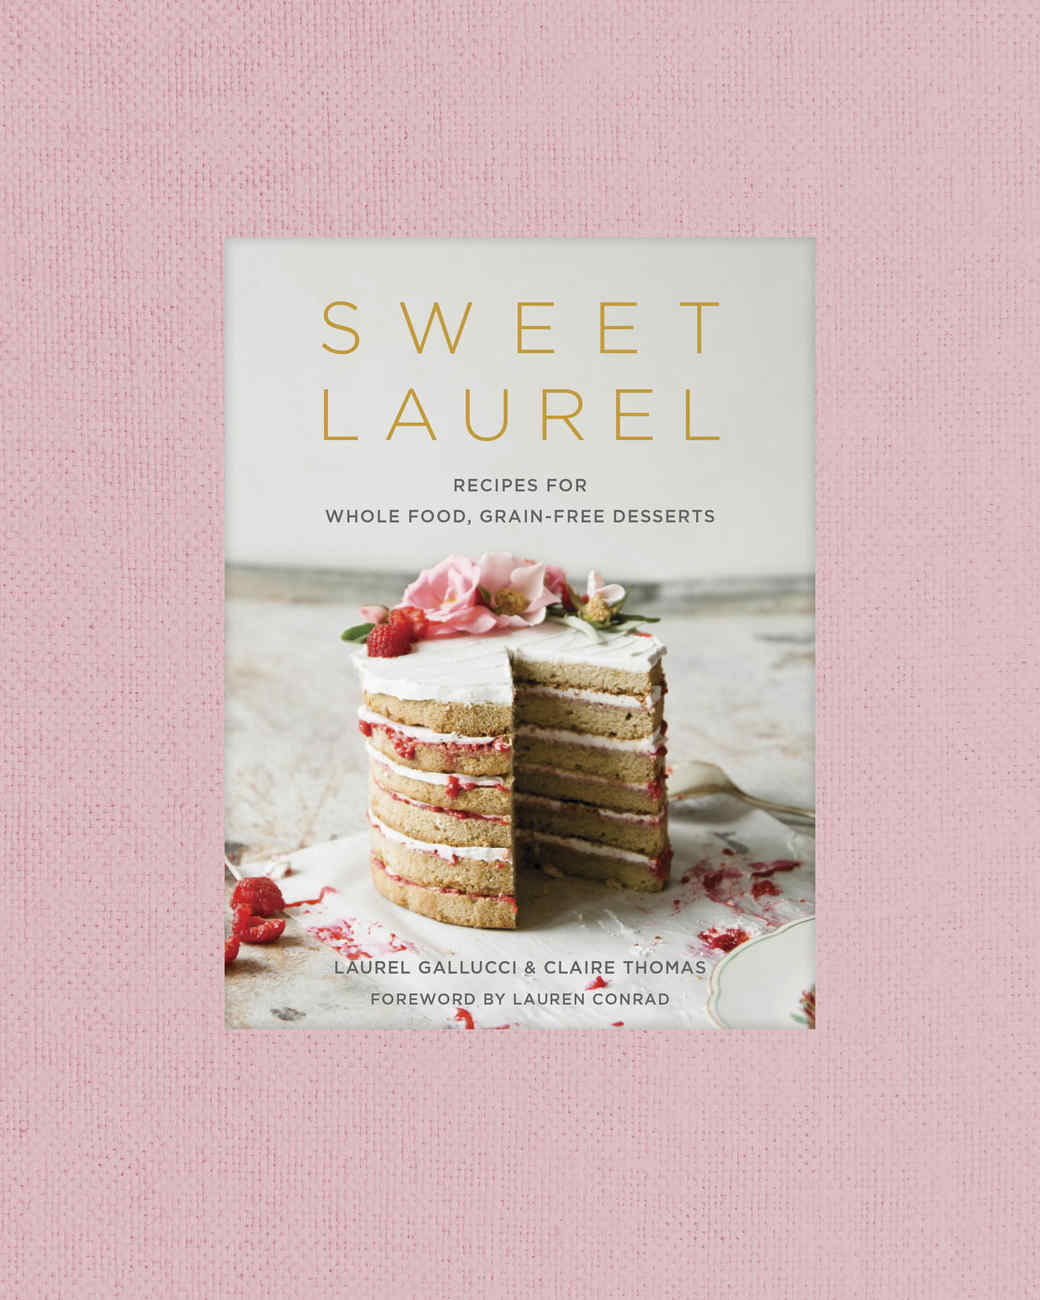 Sweet Laurel book cover